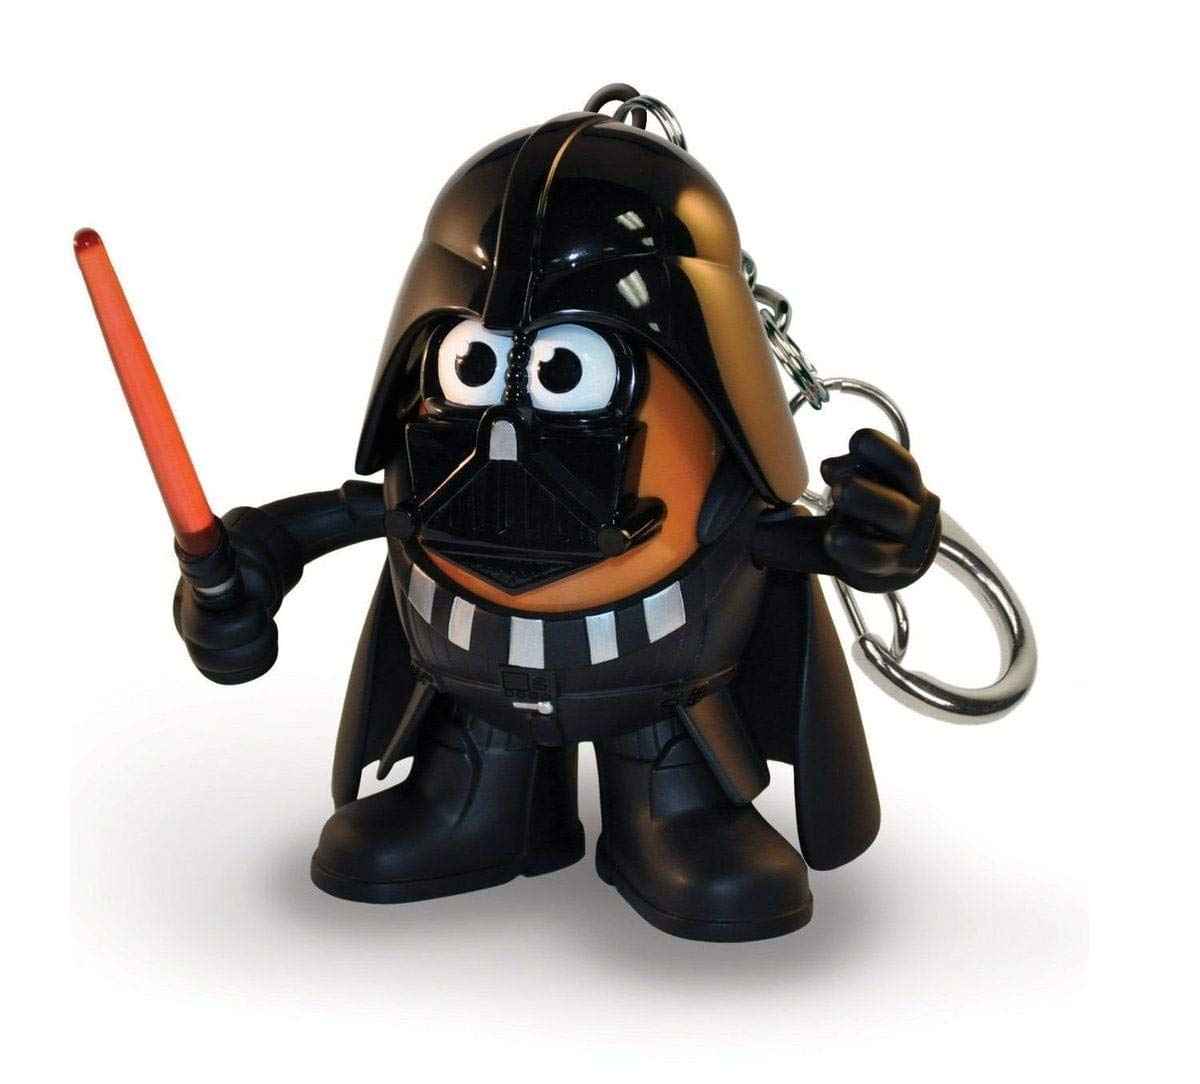 Animewild Mr. Potato Head Star Wars Darth Vader Keychain